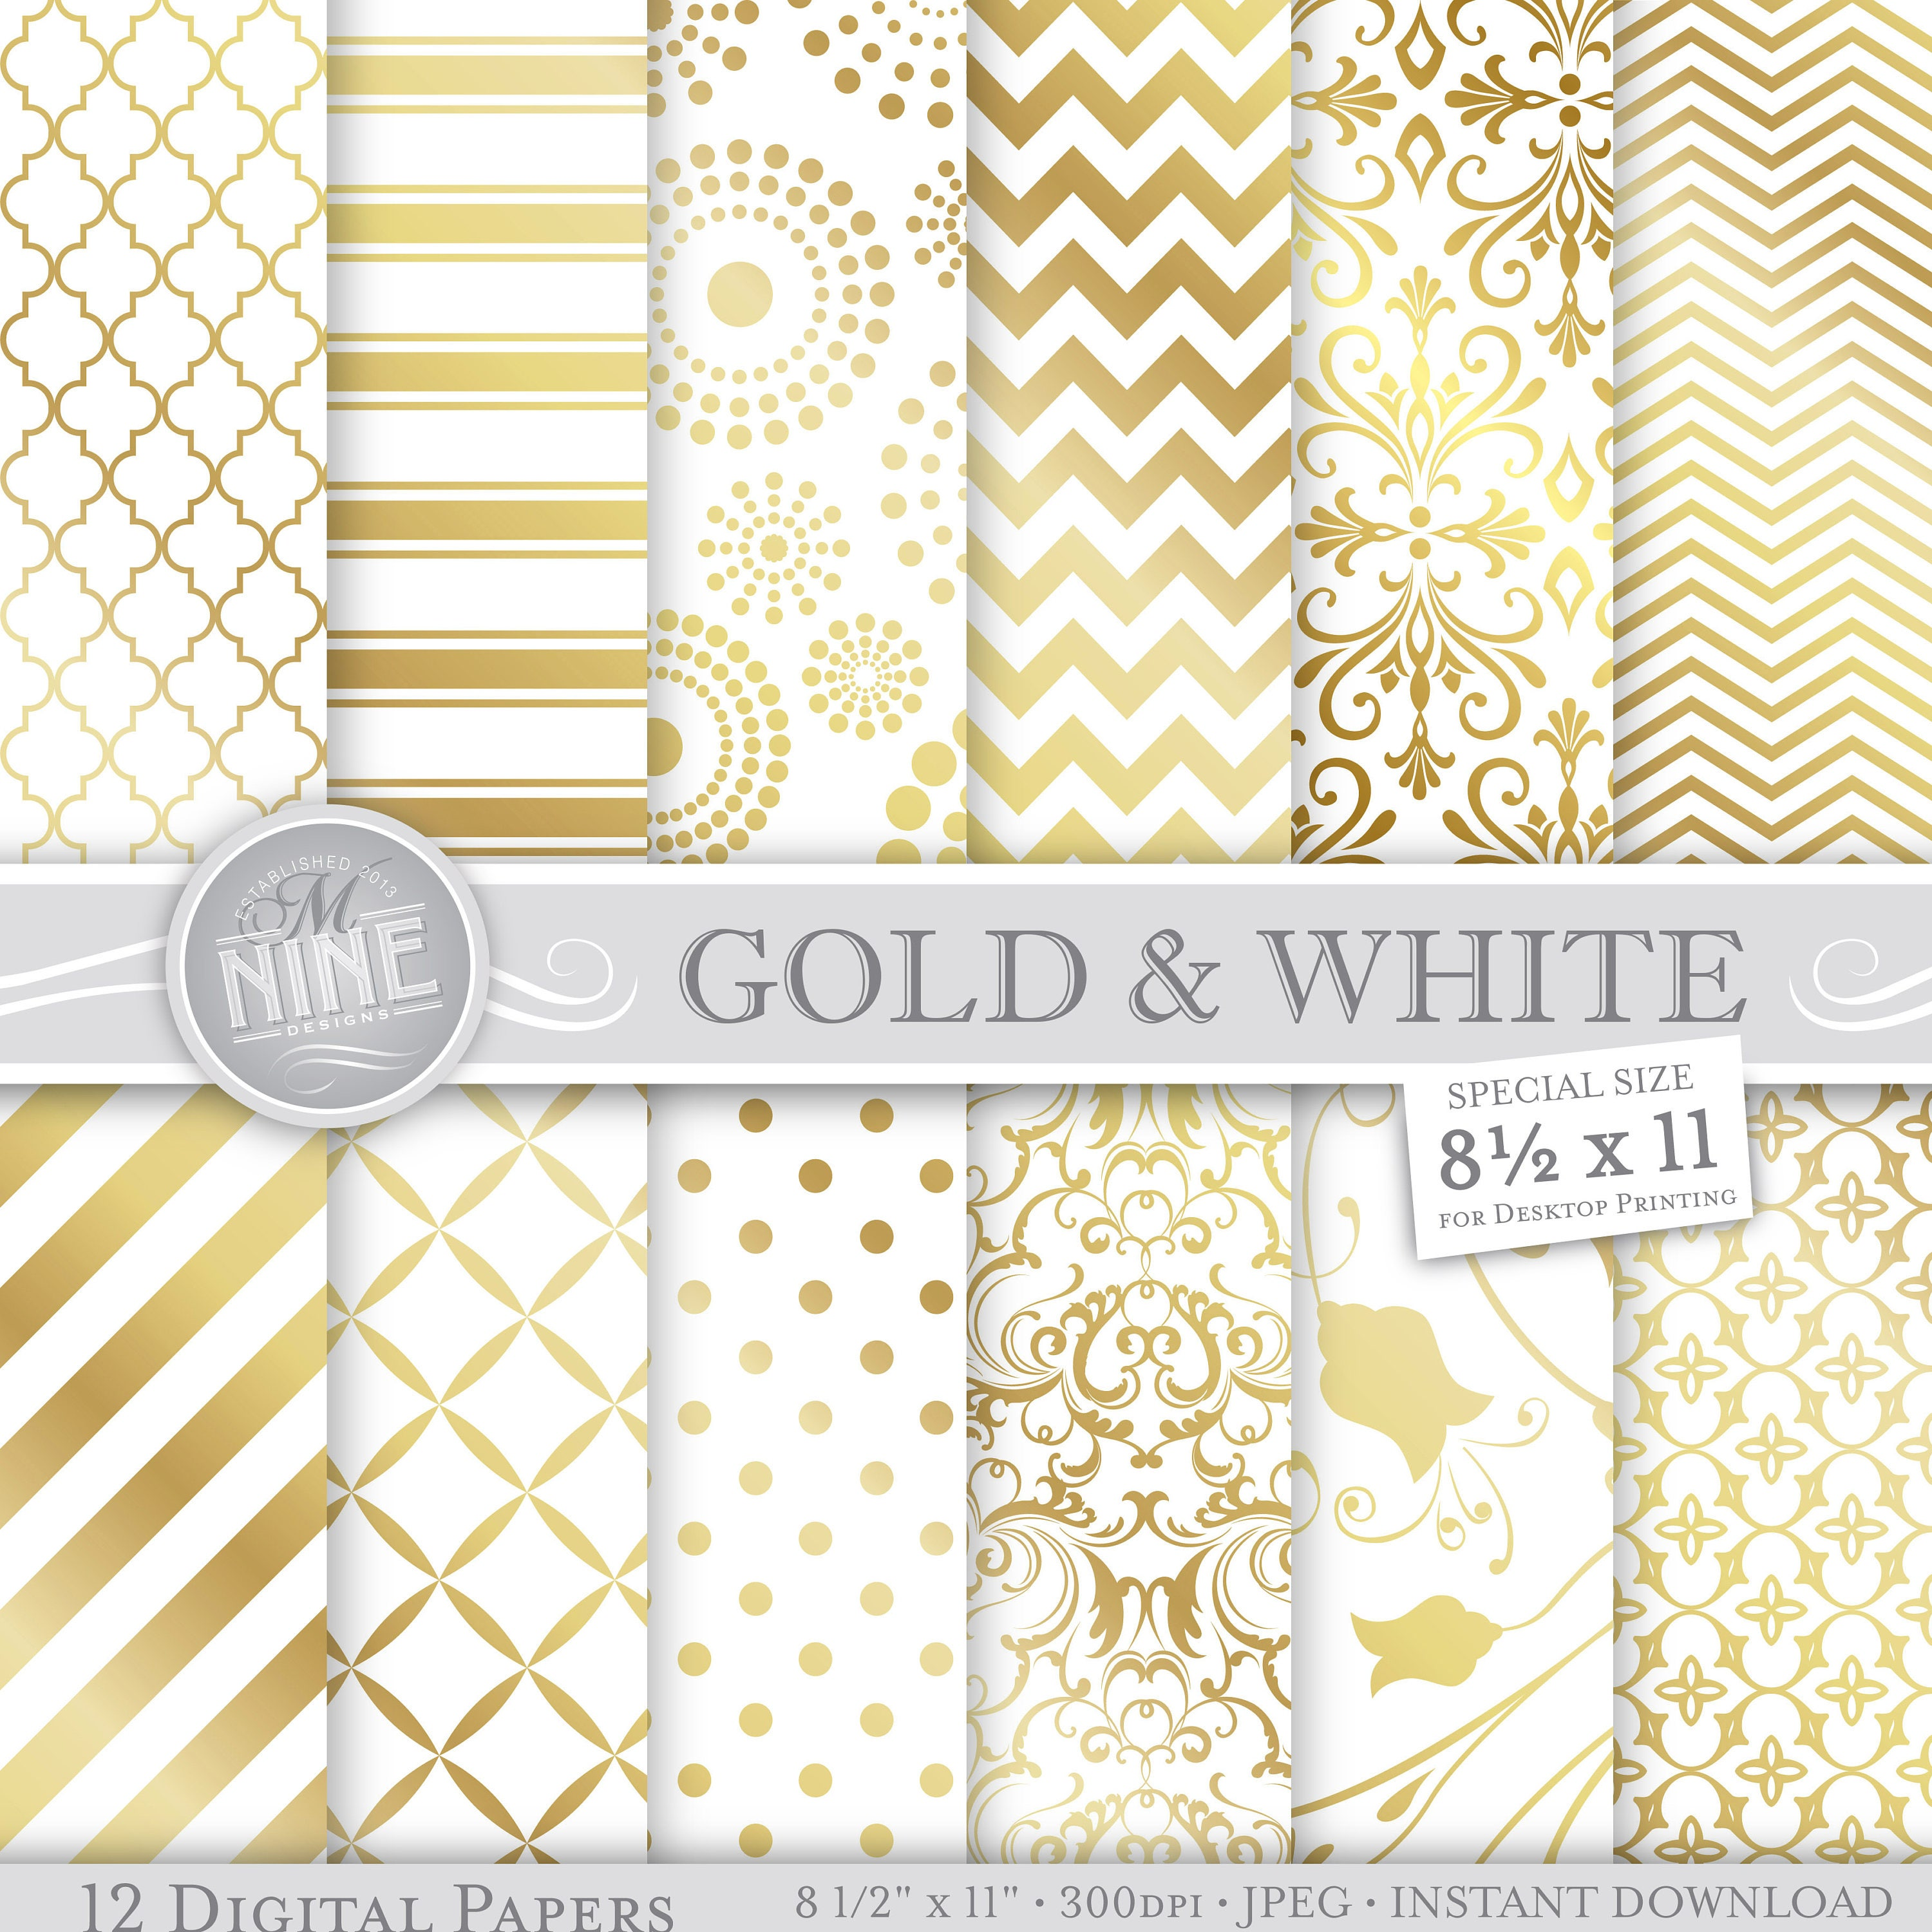 photograph about Printable Pattern Paper named GOLD Electronic Paper / Gold White Types / 8 1/2 x 11 Gold Printable Routines, Gold Downloads Gold Sbook Paper Pack